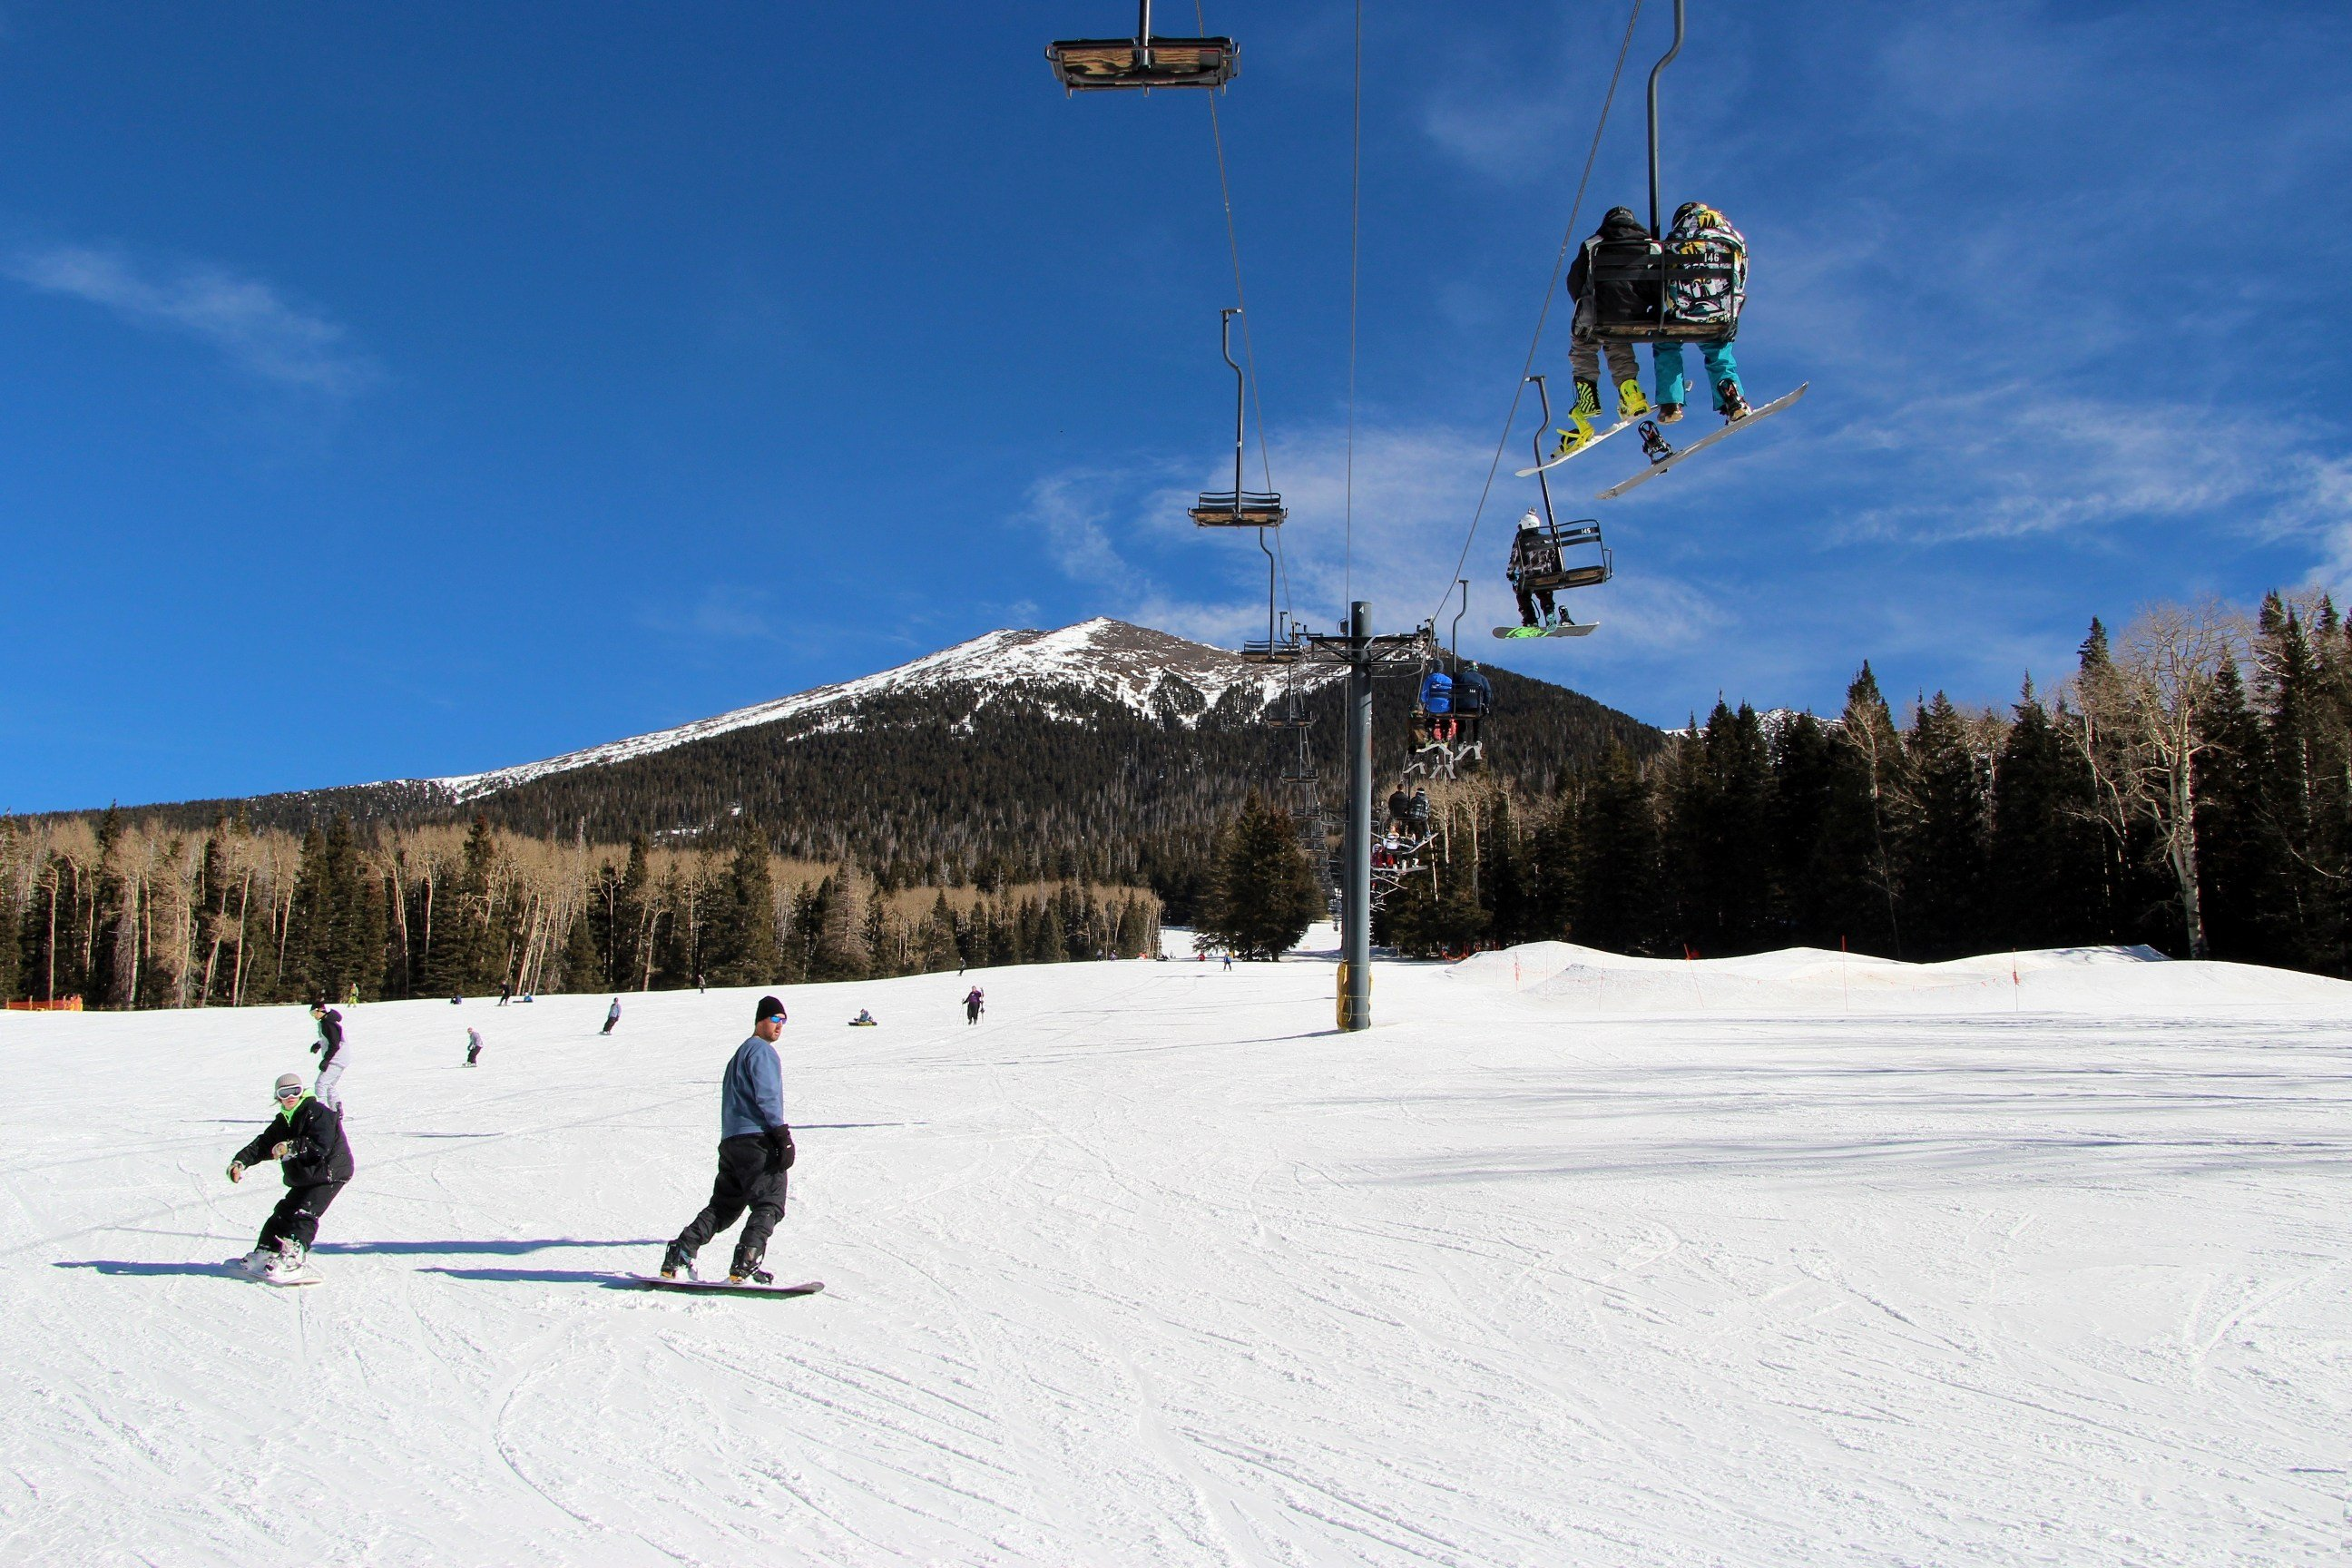 The new quad chairlift will increase the overall uphill capacity. (Source: Arizona Snowbowl)